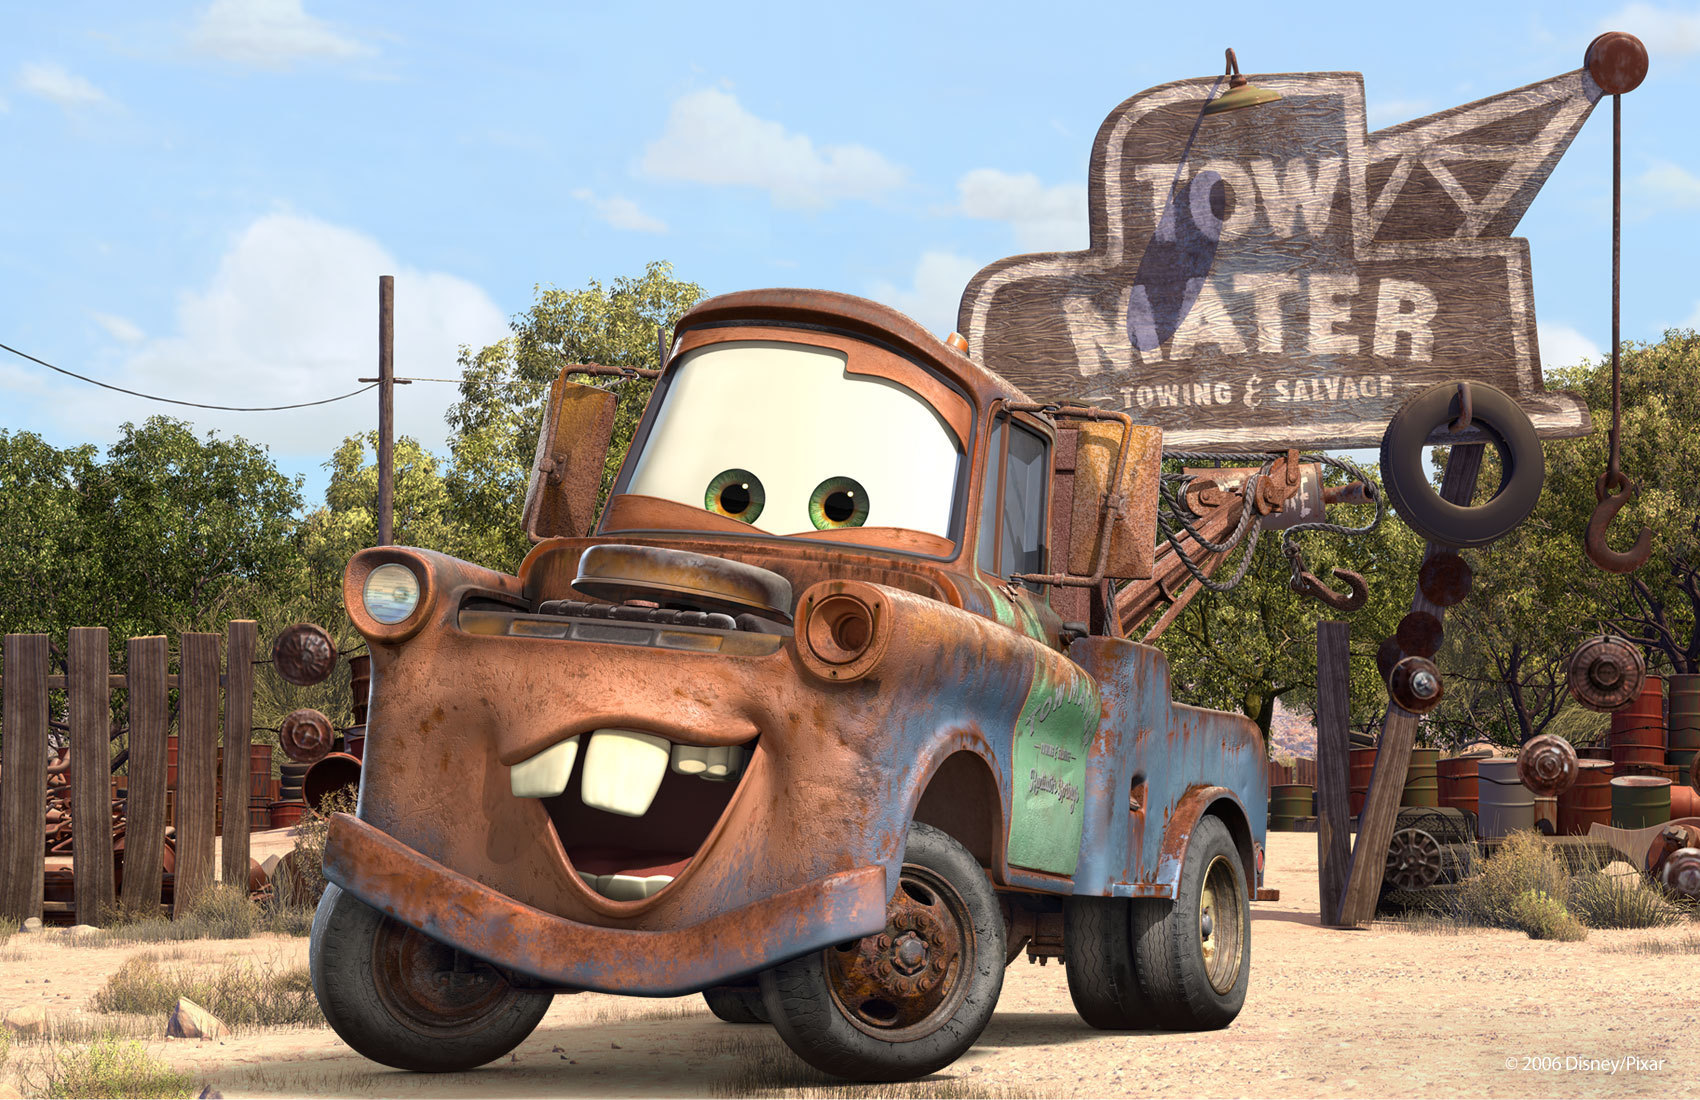 http://images2.fanpop.com/images/photos/8300000/Tow-Mater-disney-pixar-cars-8365921-1700-1100.jpg